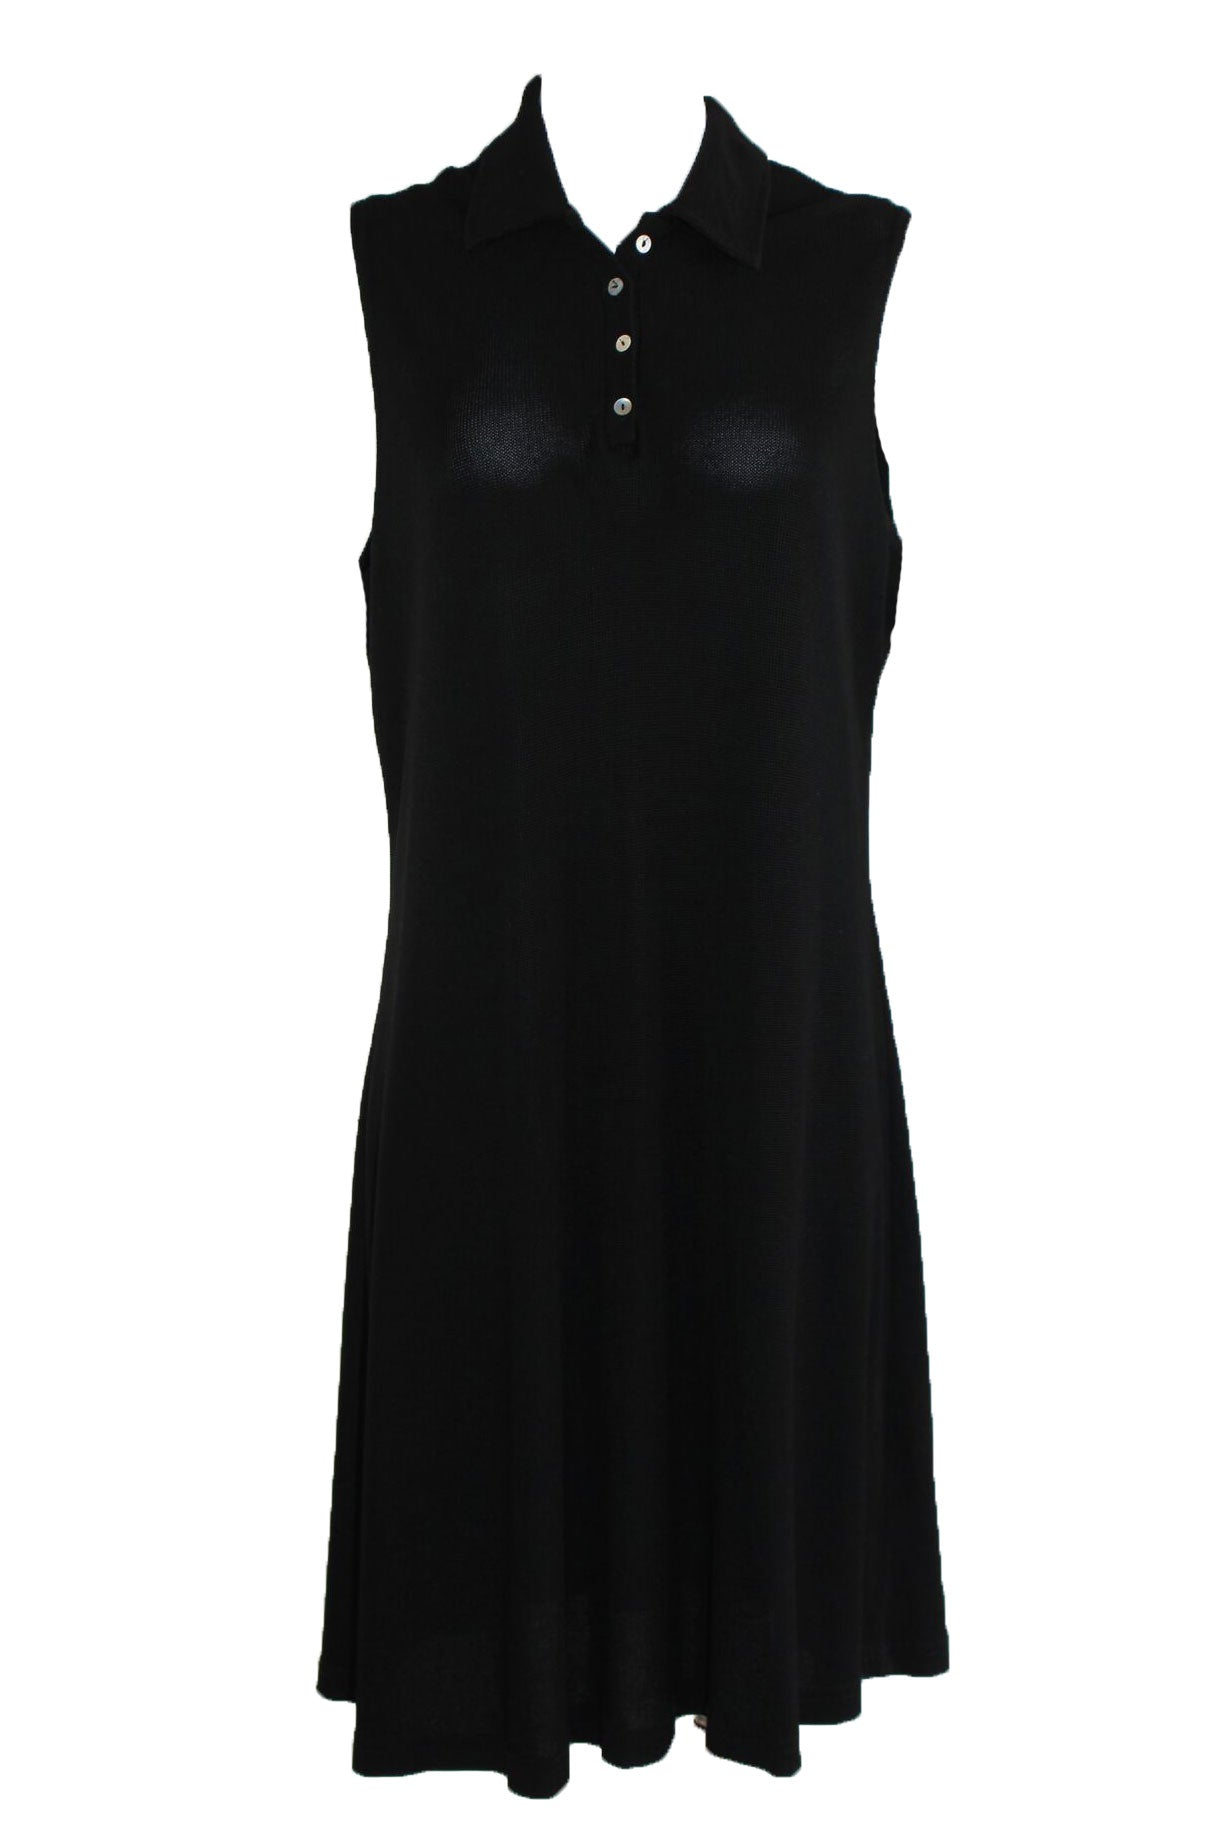 Vintage Black Polo Dress